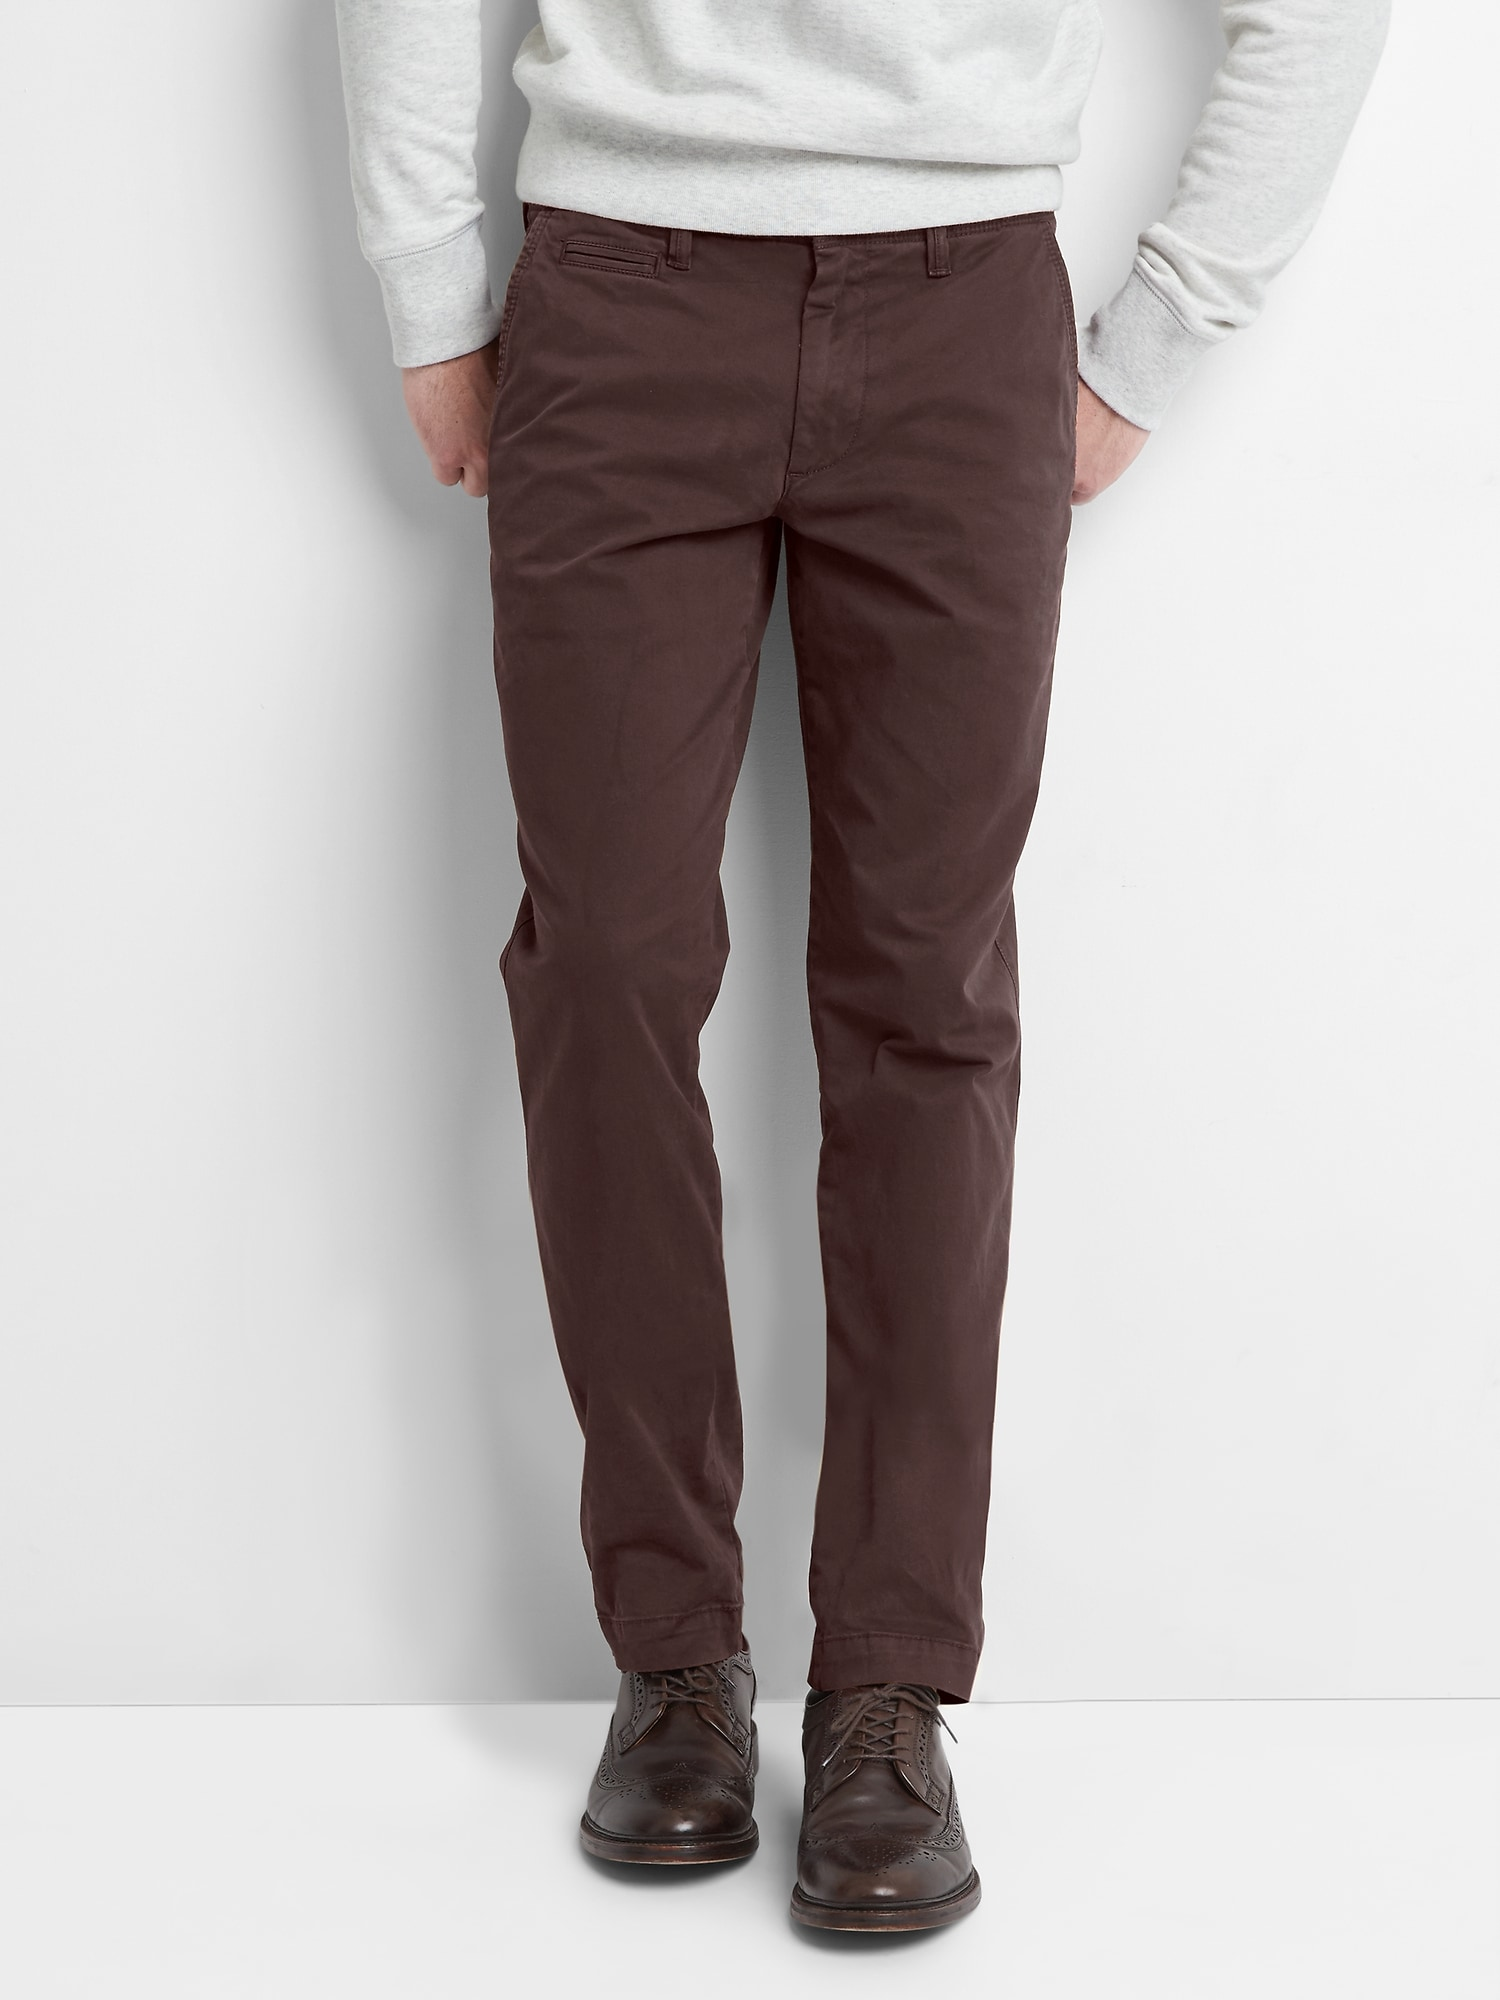 07a56e387906c Vintage Khakis in Slim Fit with GapFlex | Gap